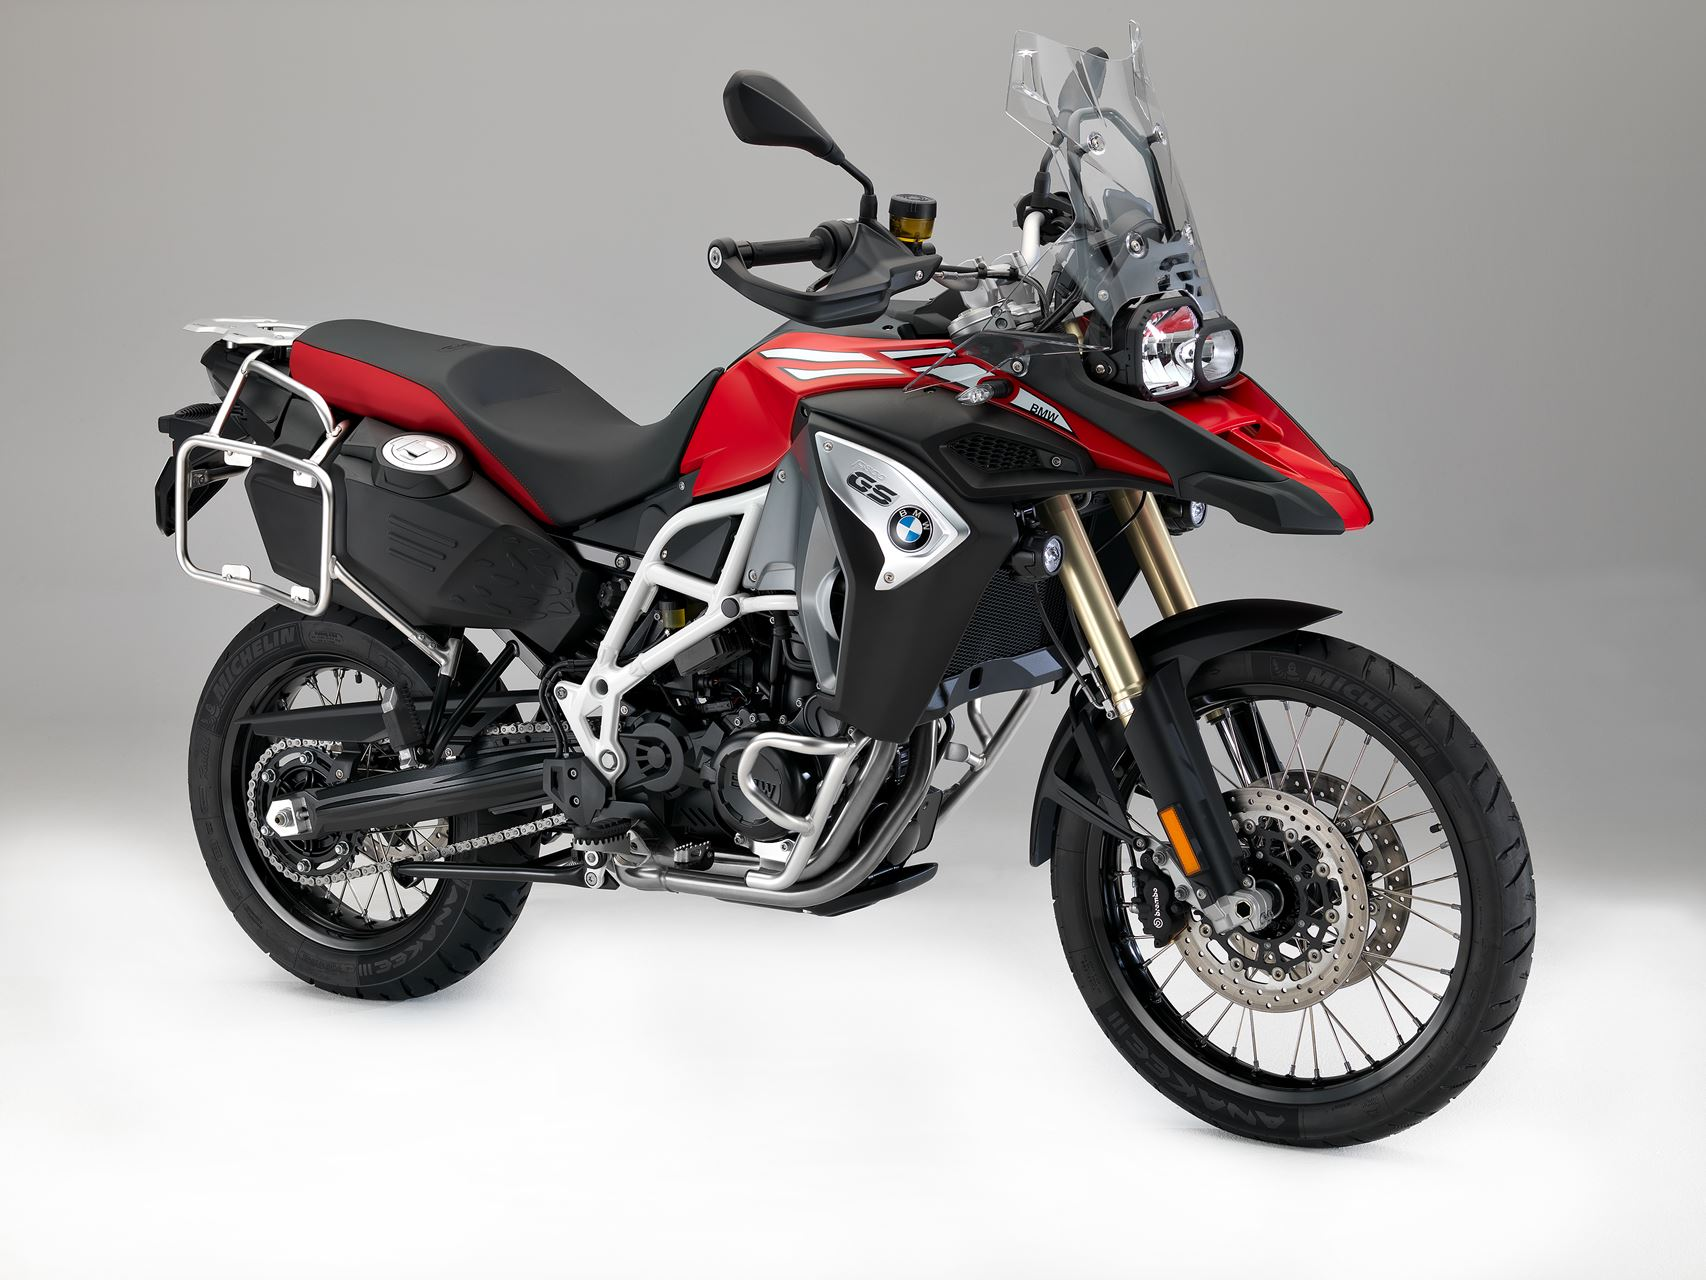 bmw f 800 gs adventure moto adventure andar de moto. Black Bedroom Furniture Sets. Home Design Ideas